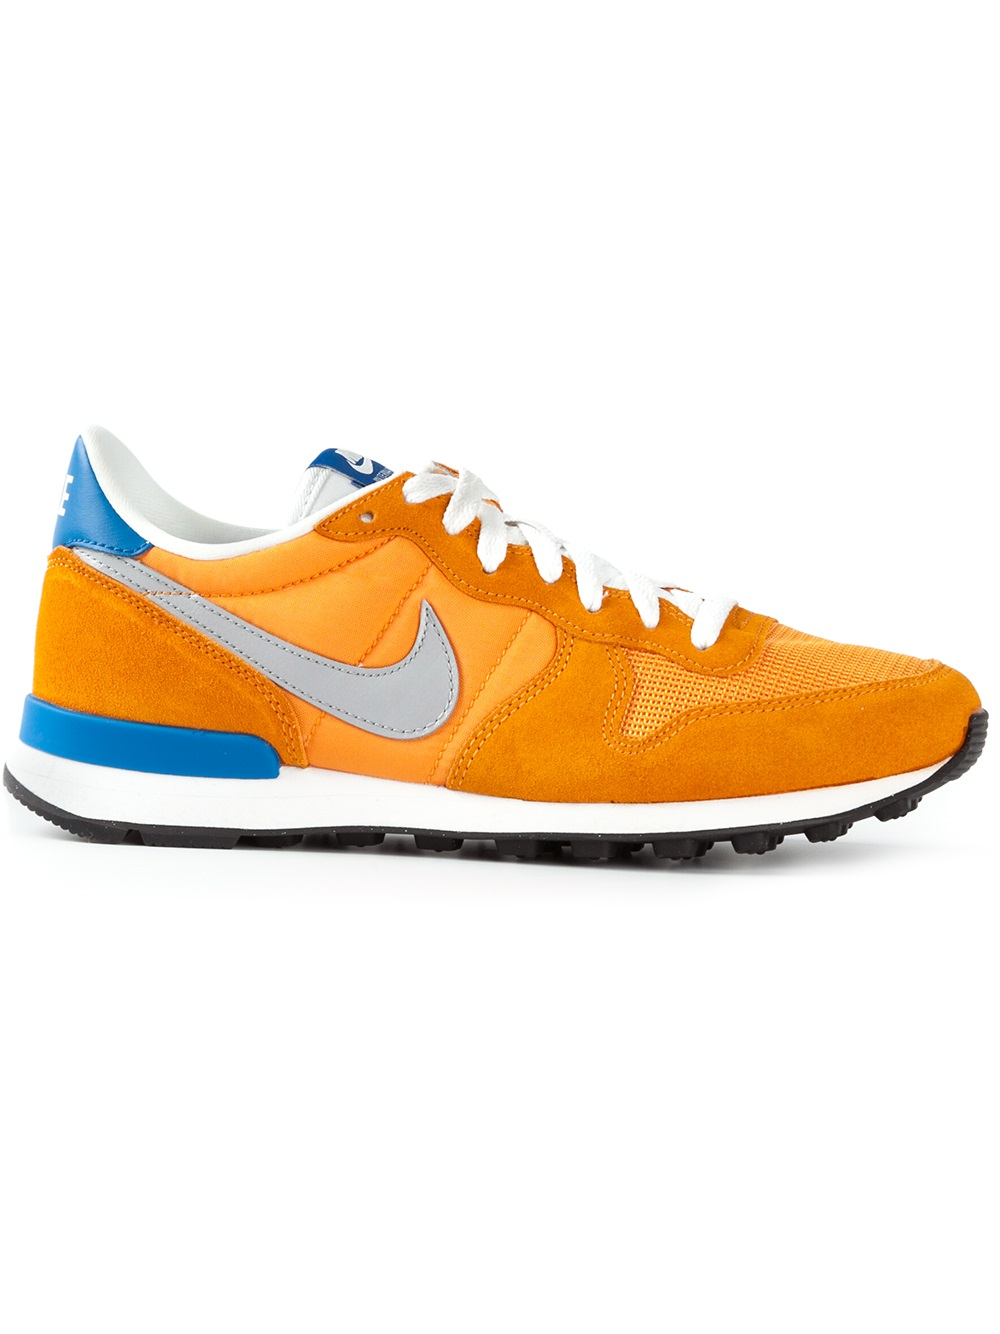 timeless design 4b781 f42a0 wholesale discount original running shoes nike internationalist couple gray  orange b2a61 d8cd2  shopping new style gallery. previously sold at farfetch  mens ...